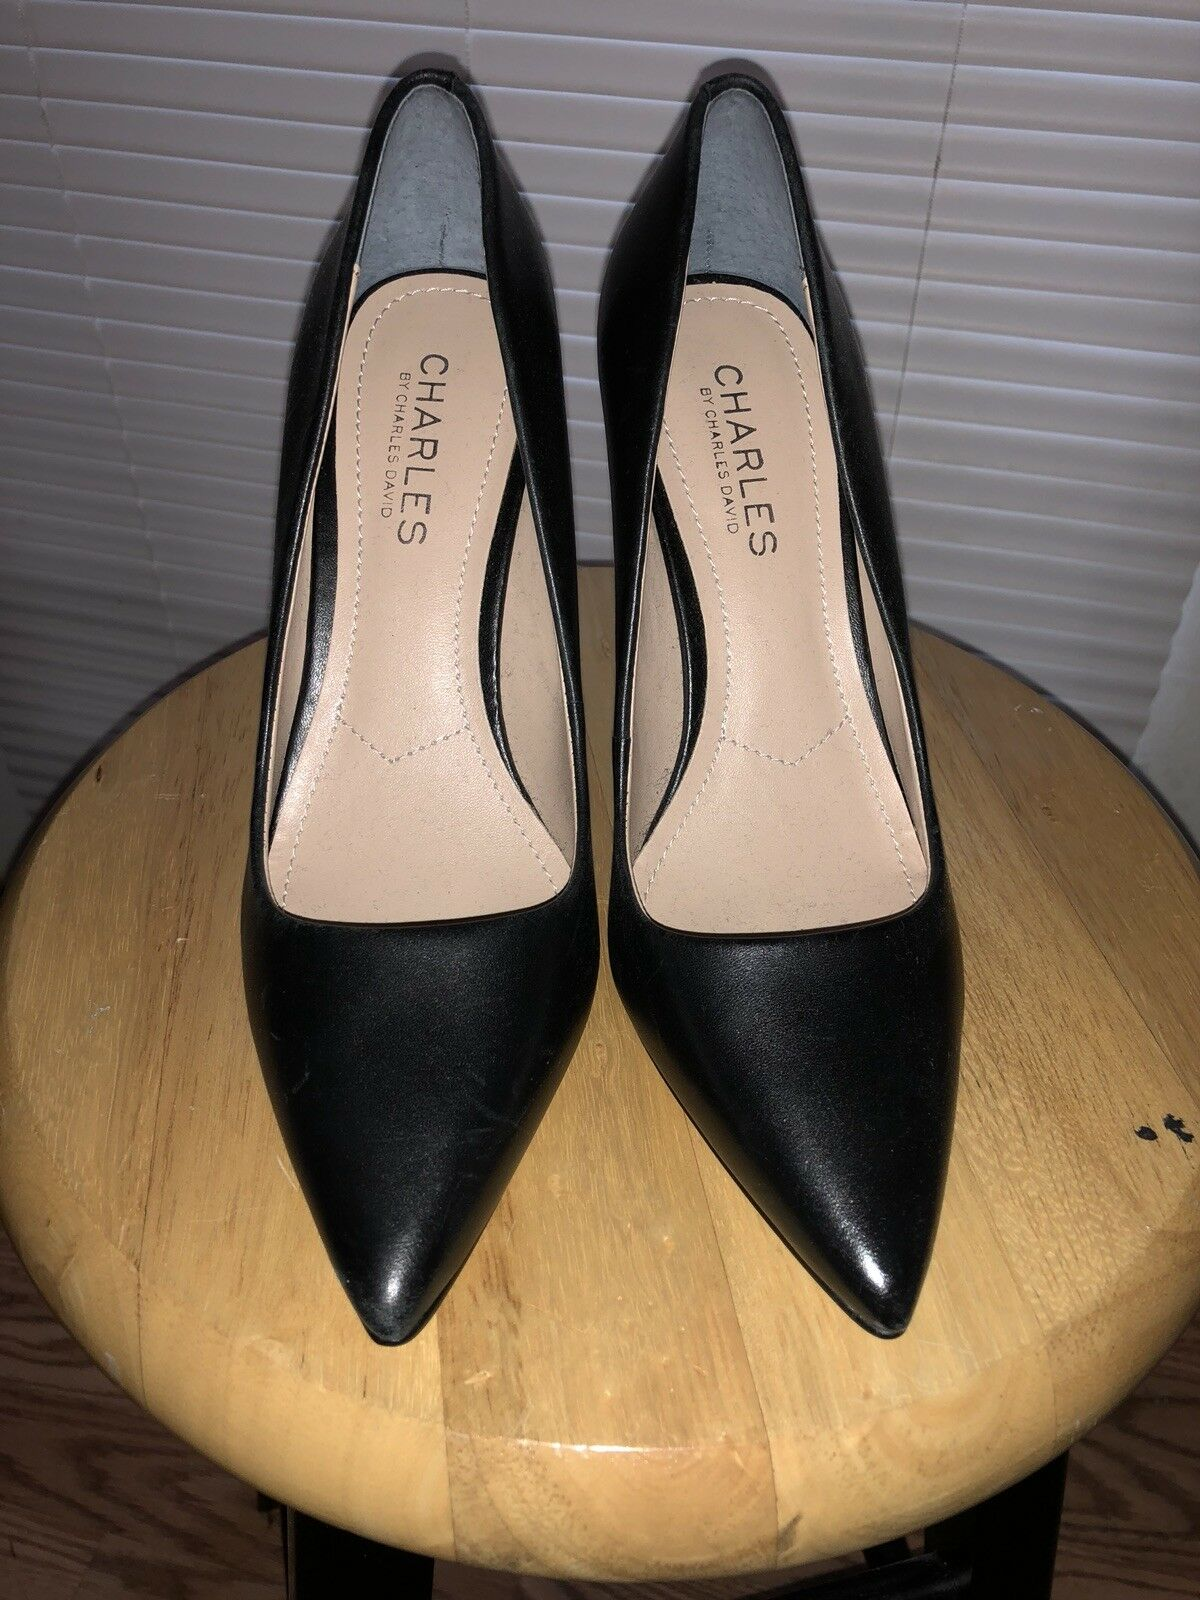 charles by david charles david by leather black womens pumps 5.2 745a77